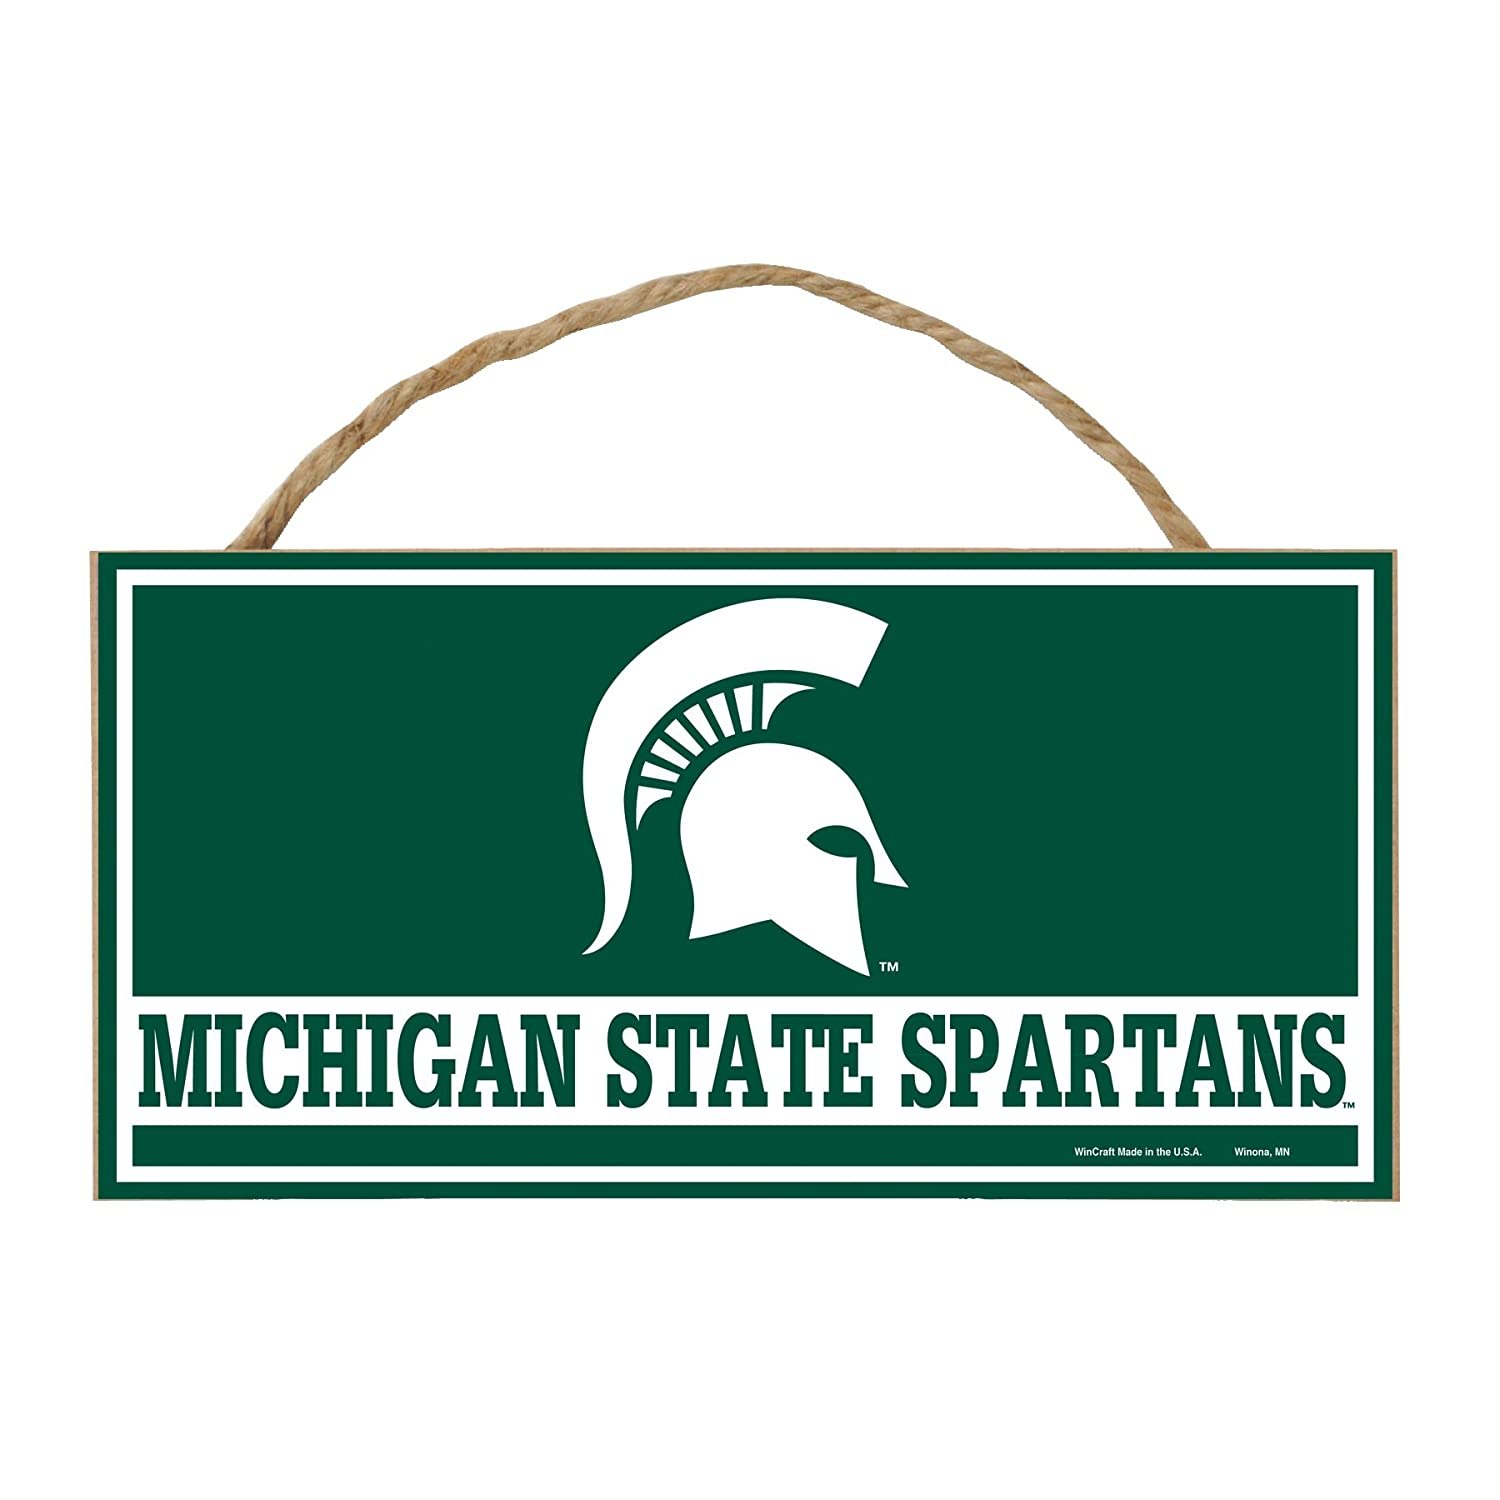 5 x 10-Inch WinCraft NCAA Michigan State Spartans Hardboard Wood Signs with Rope Multi